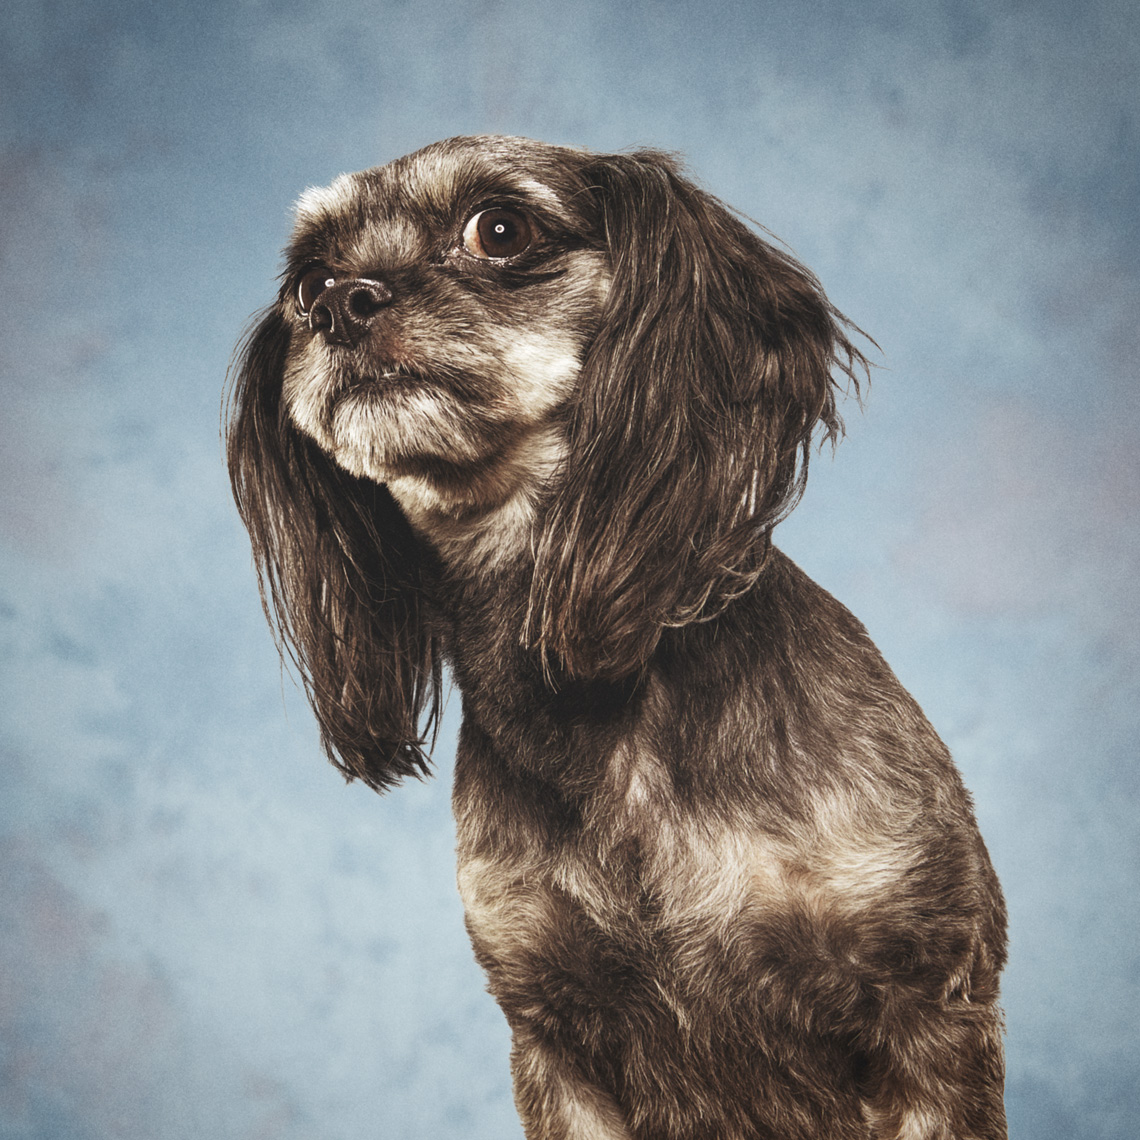 Dog yearbook portrait on retro blue background